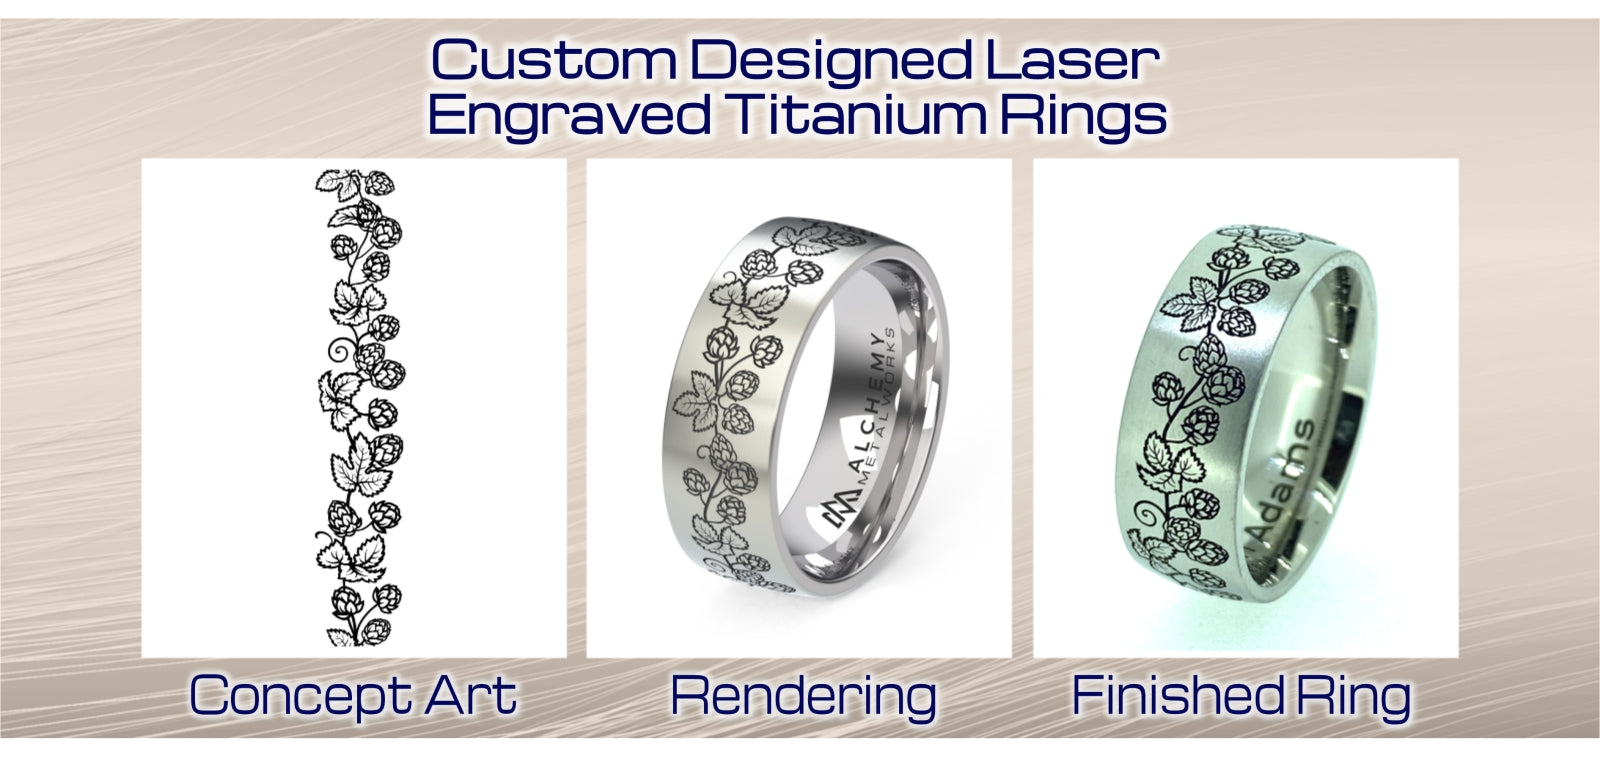 Custom Laser Engraved Titanium Rings and Wedding Bands